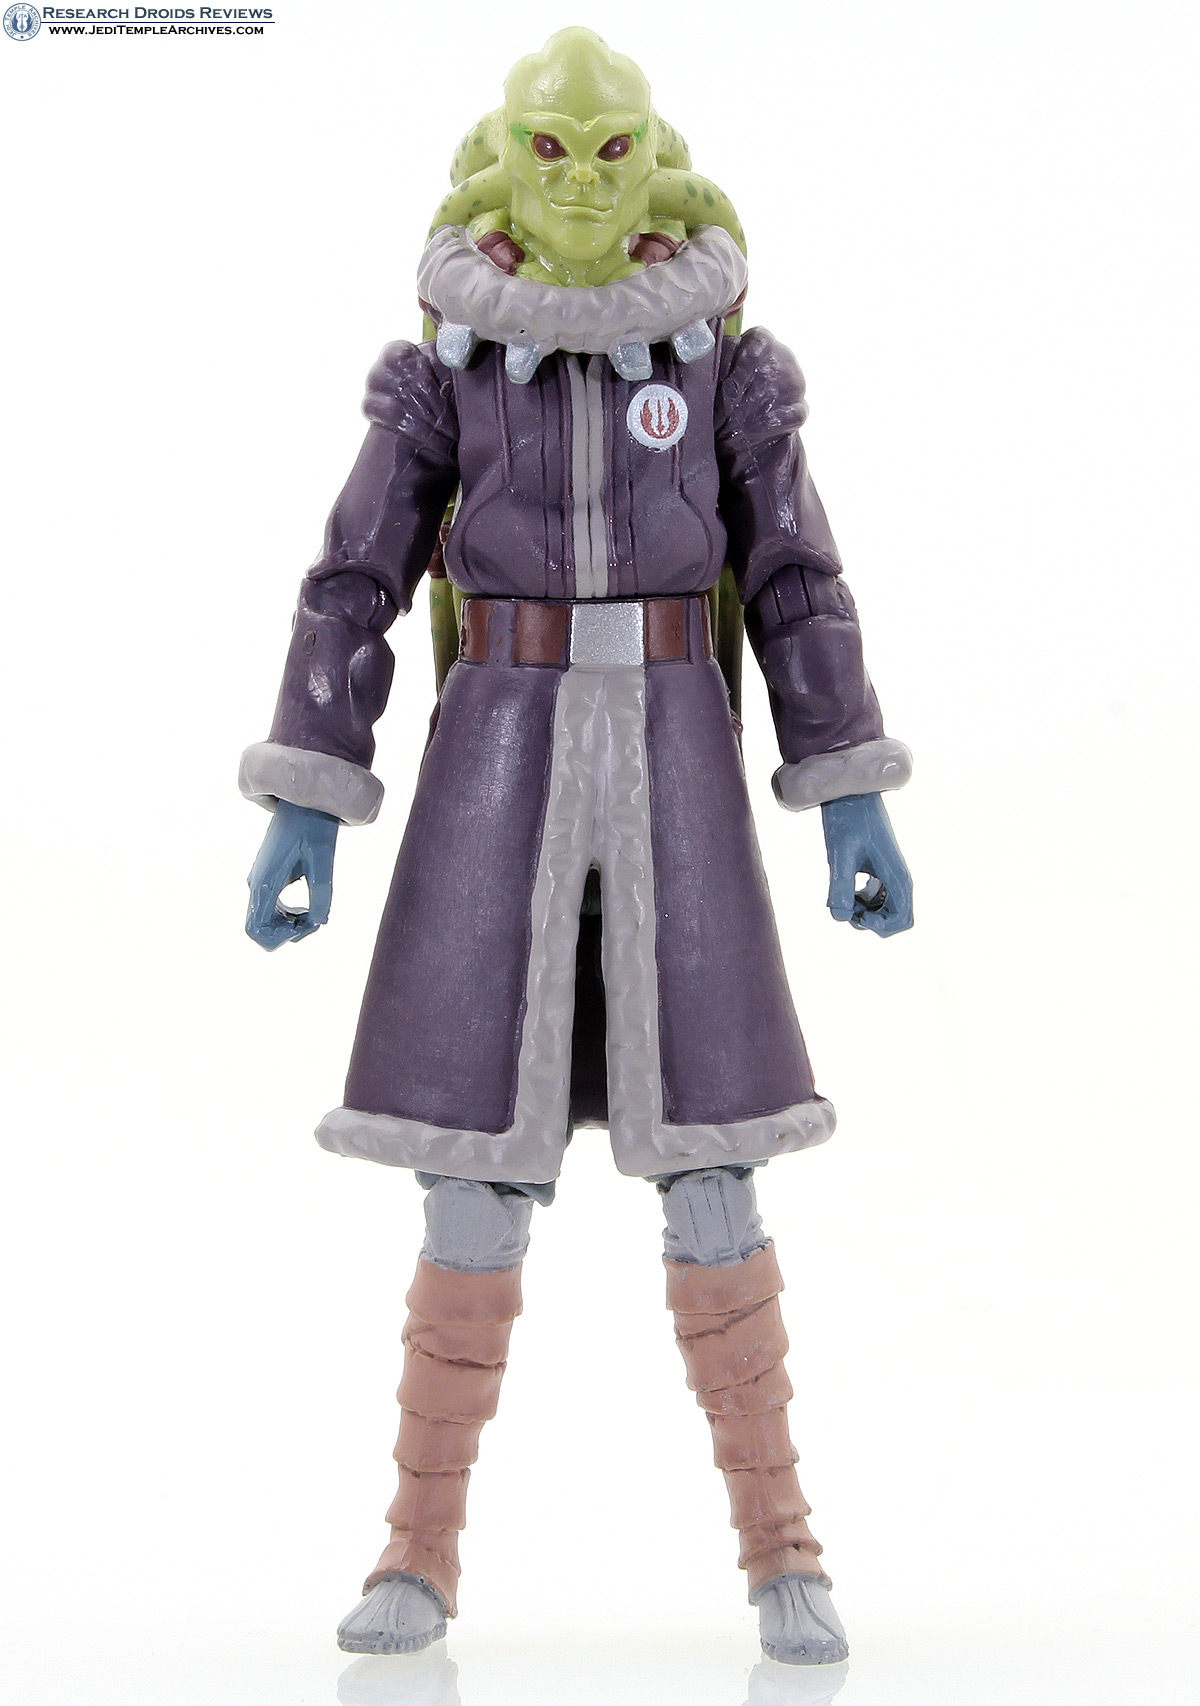 Kit Fisto (Cold Weather Gear)